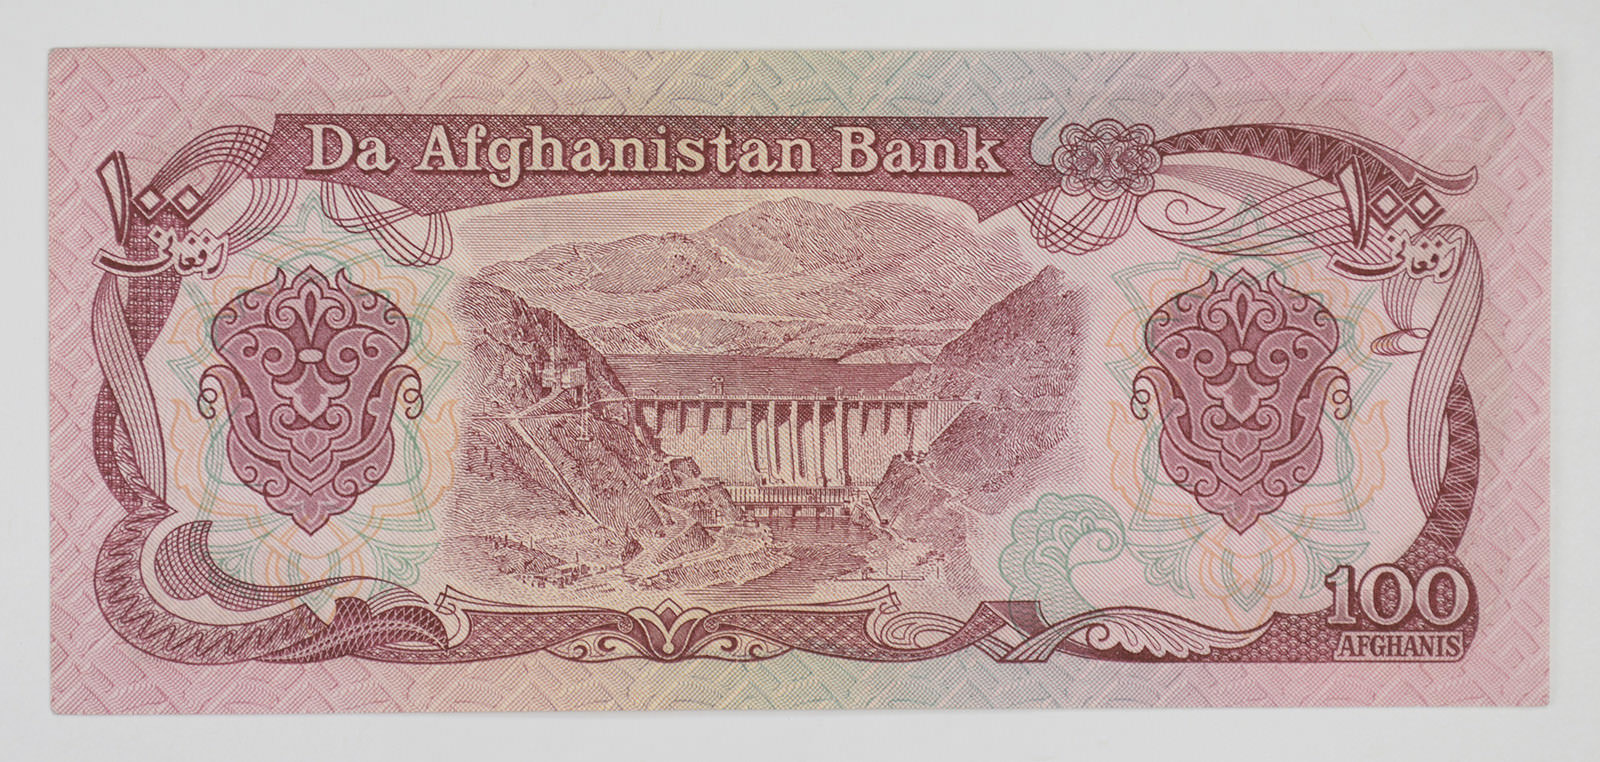 Image 1 Of 2 Afghanistan Currency